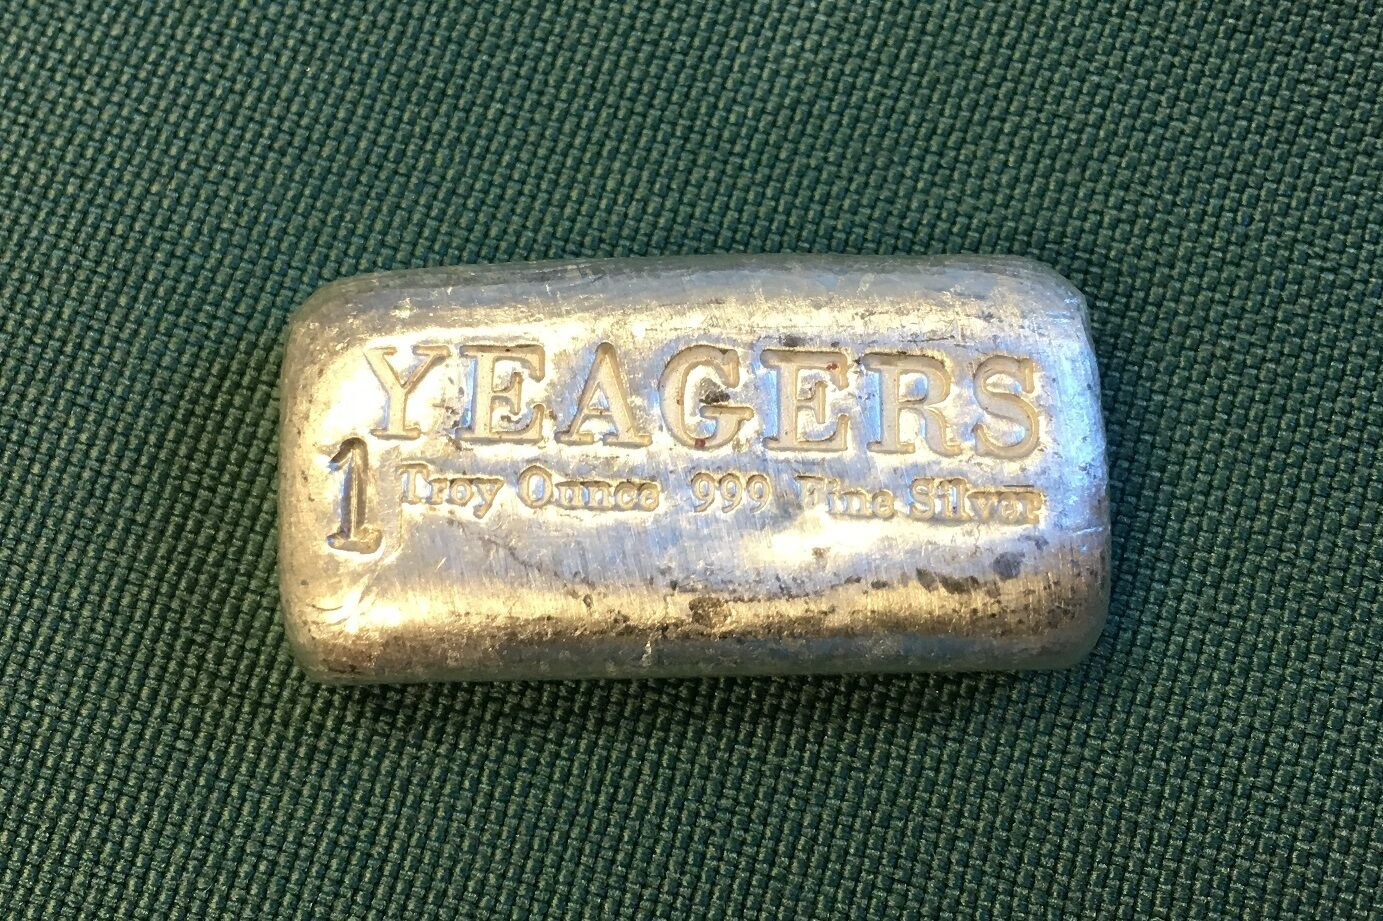 1 oz Hand Poured 999 Silver Bullion Bar by YPS (Bare Bones)